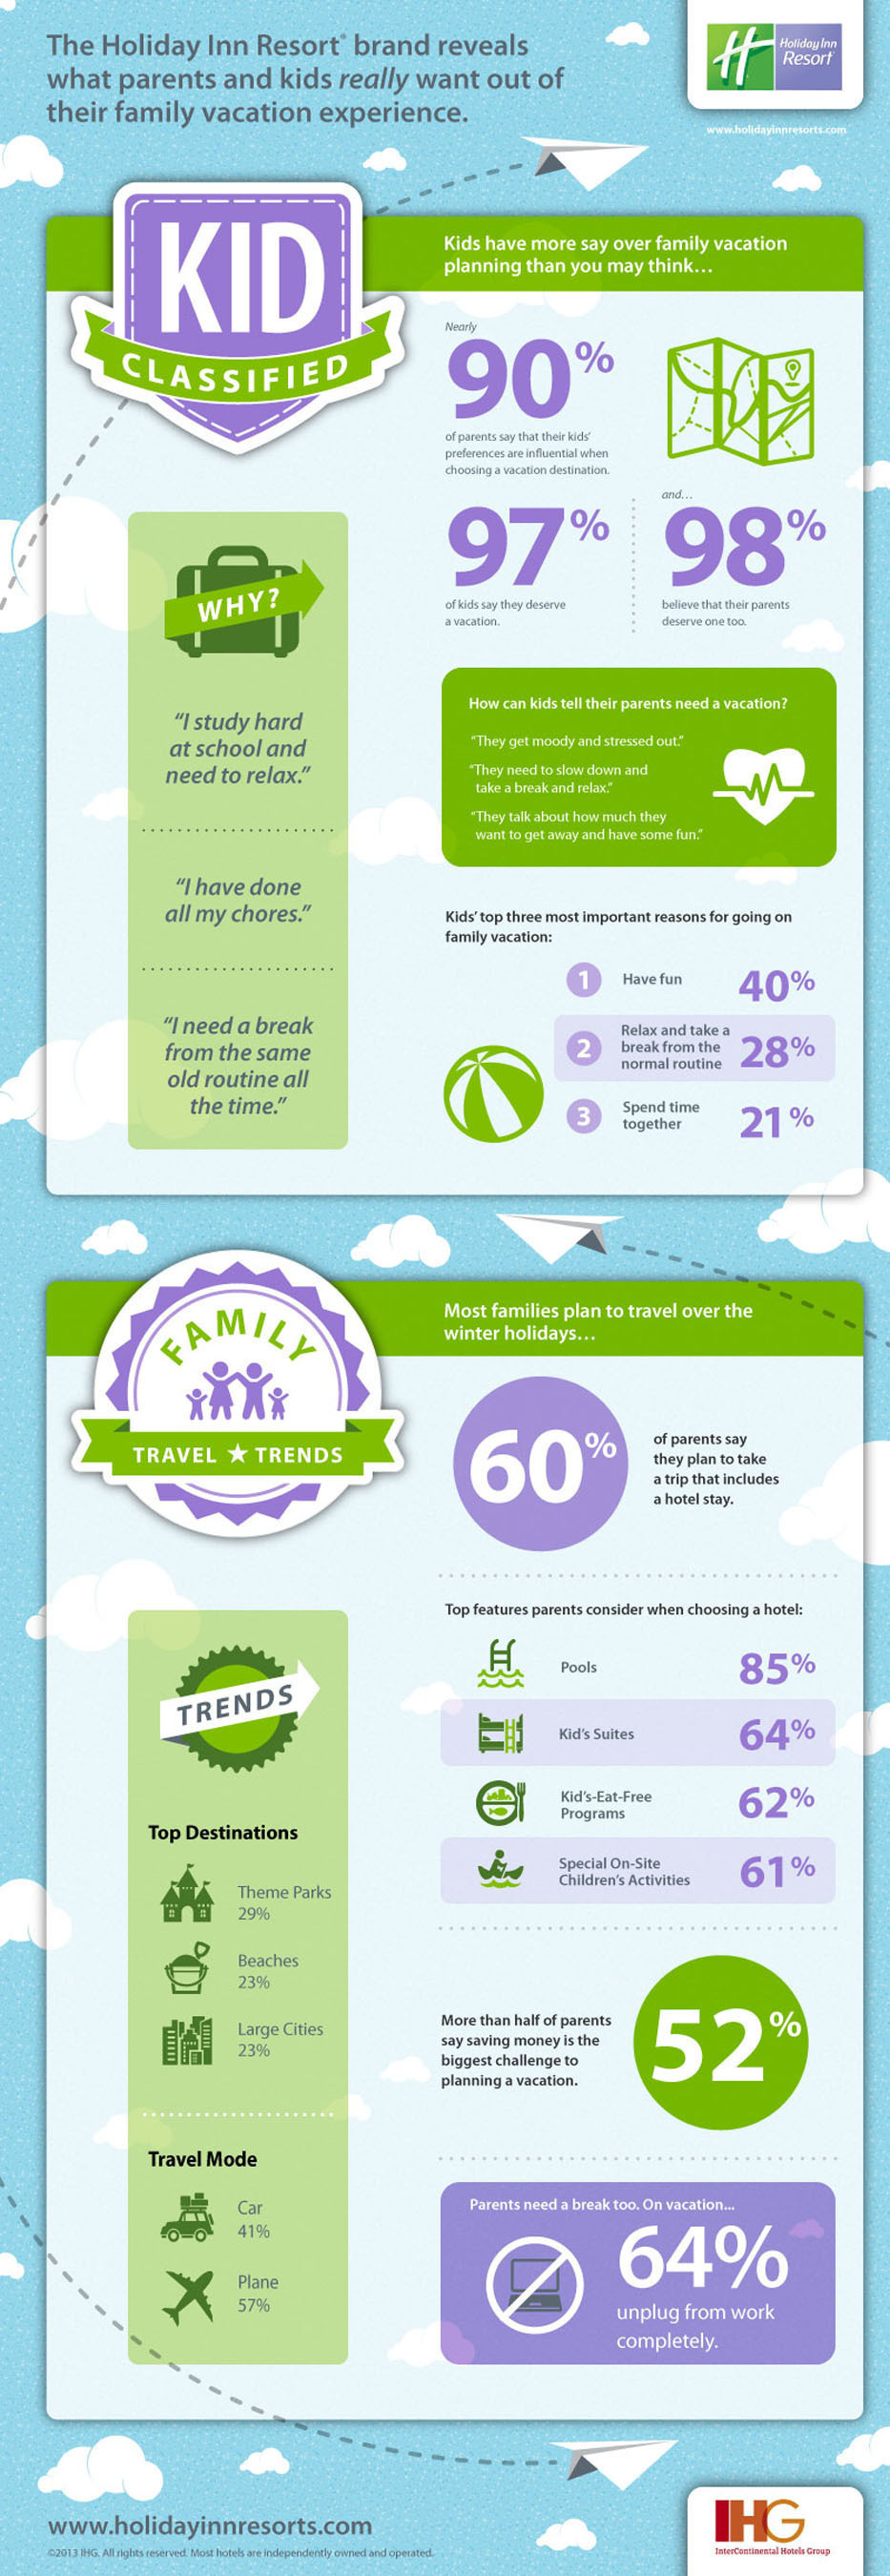 The Holiday Inn Resort® Brand Launches Kid Classified Campaign